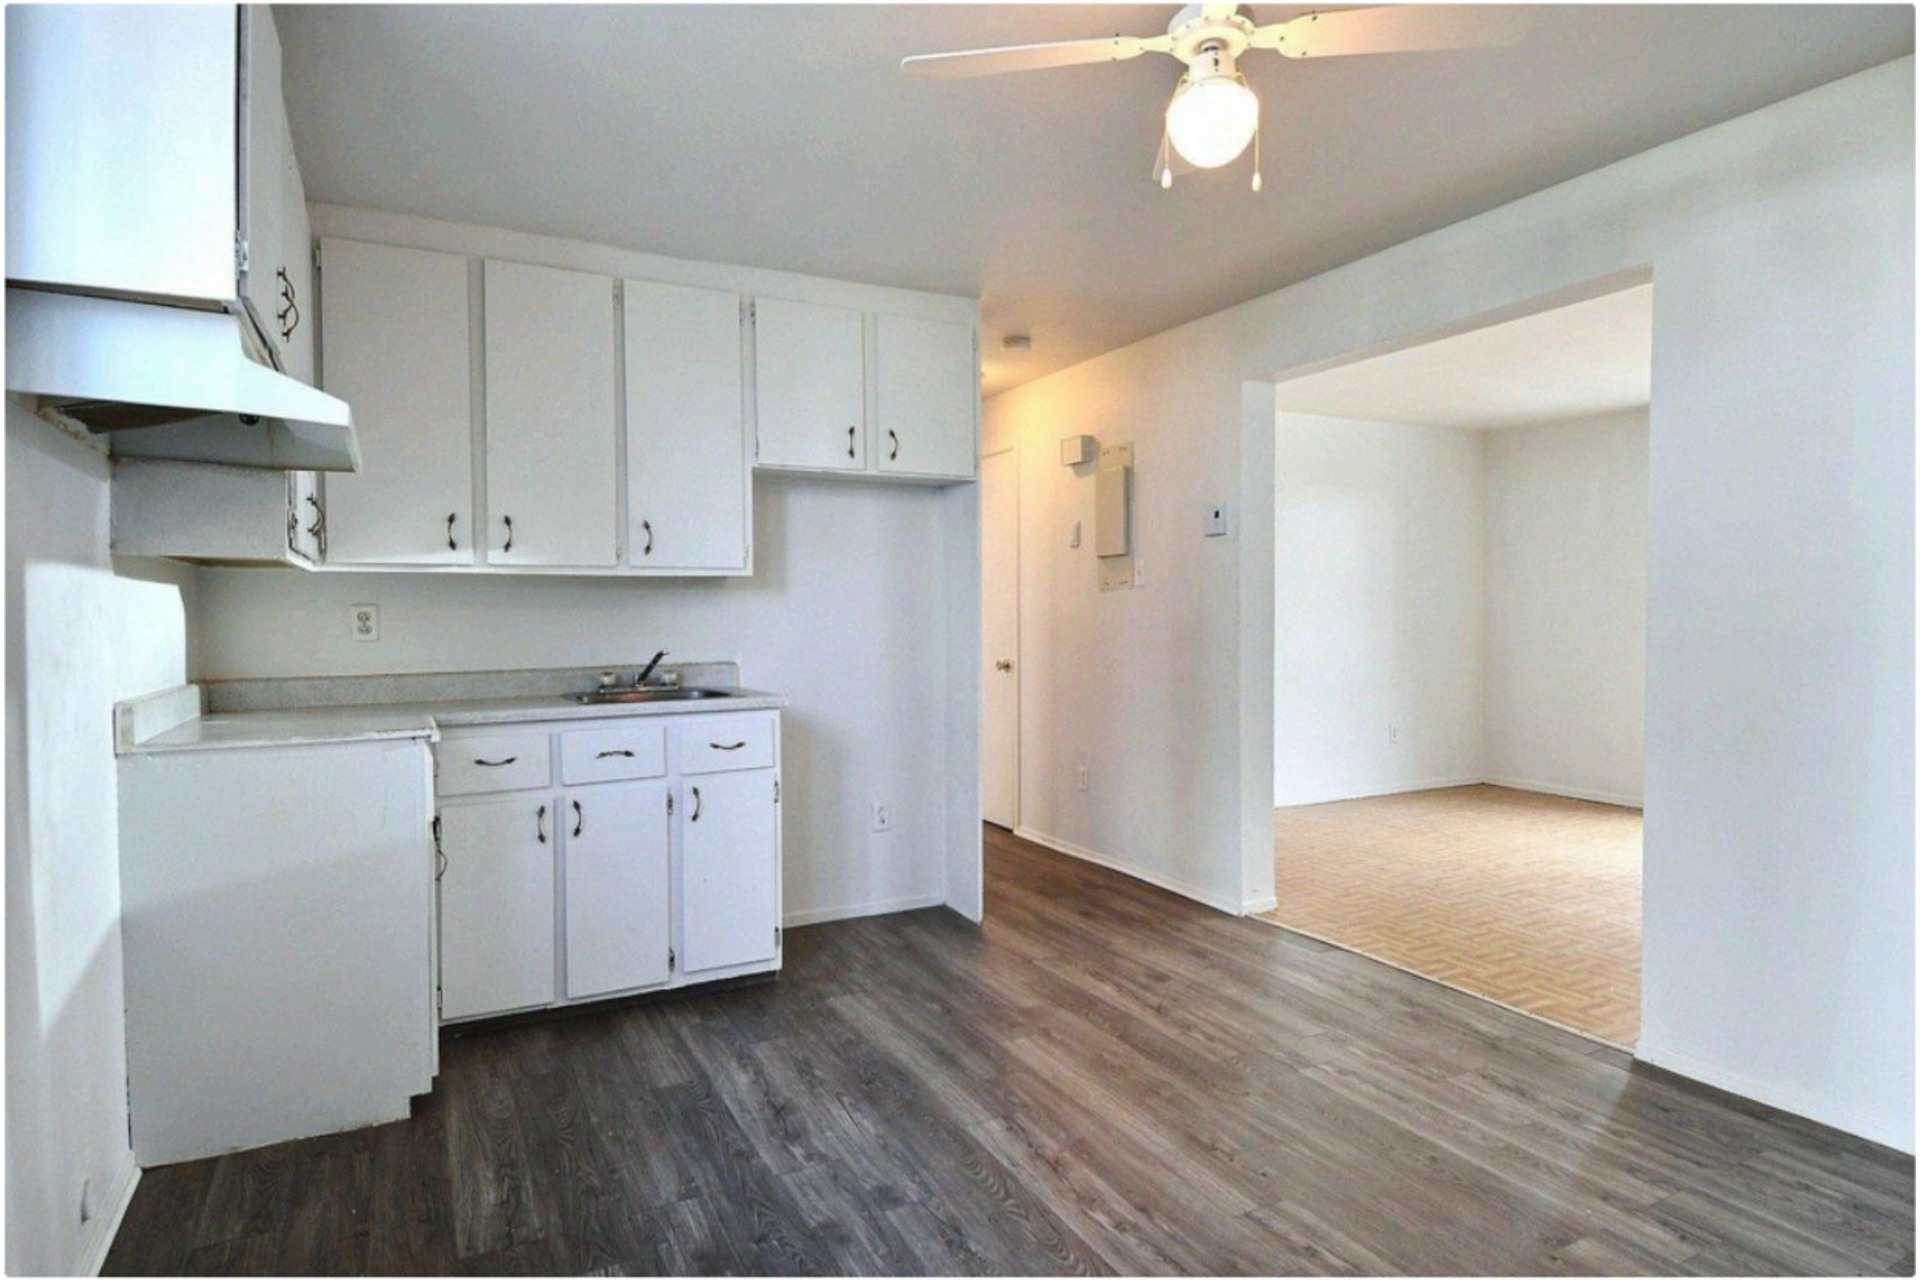 image 4 - Apartment For rent Sorel-Tracy - 5 rooms